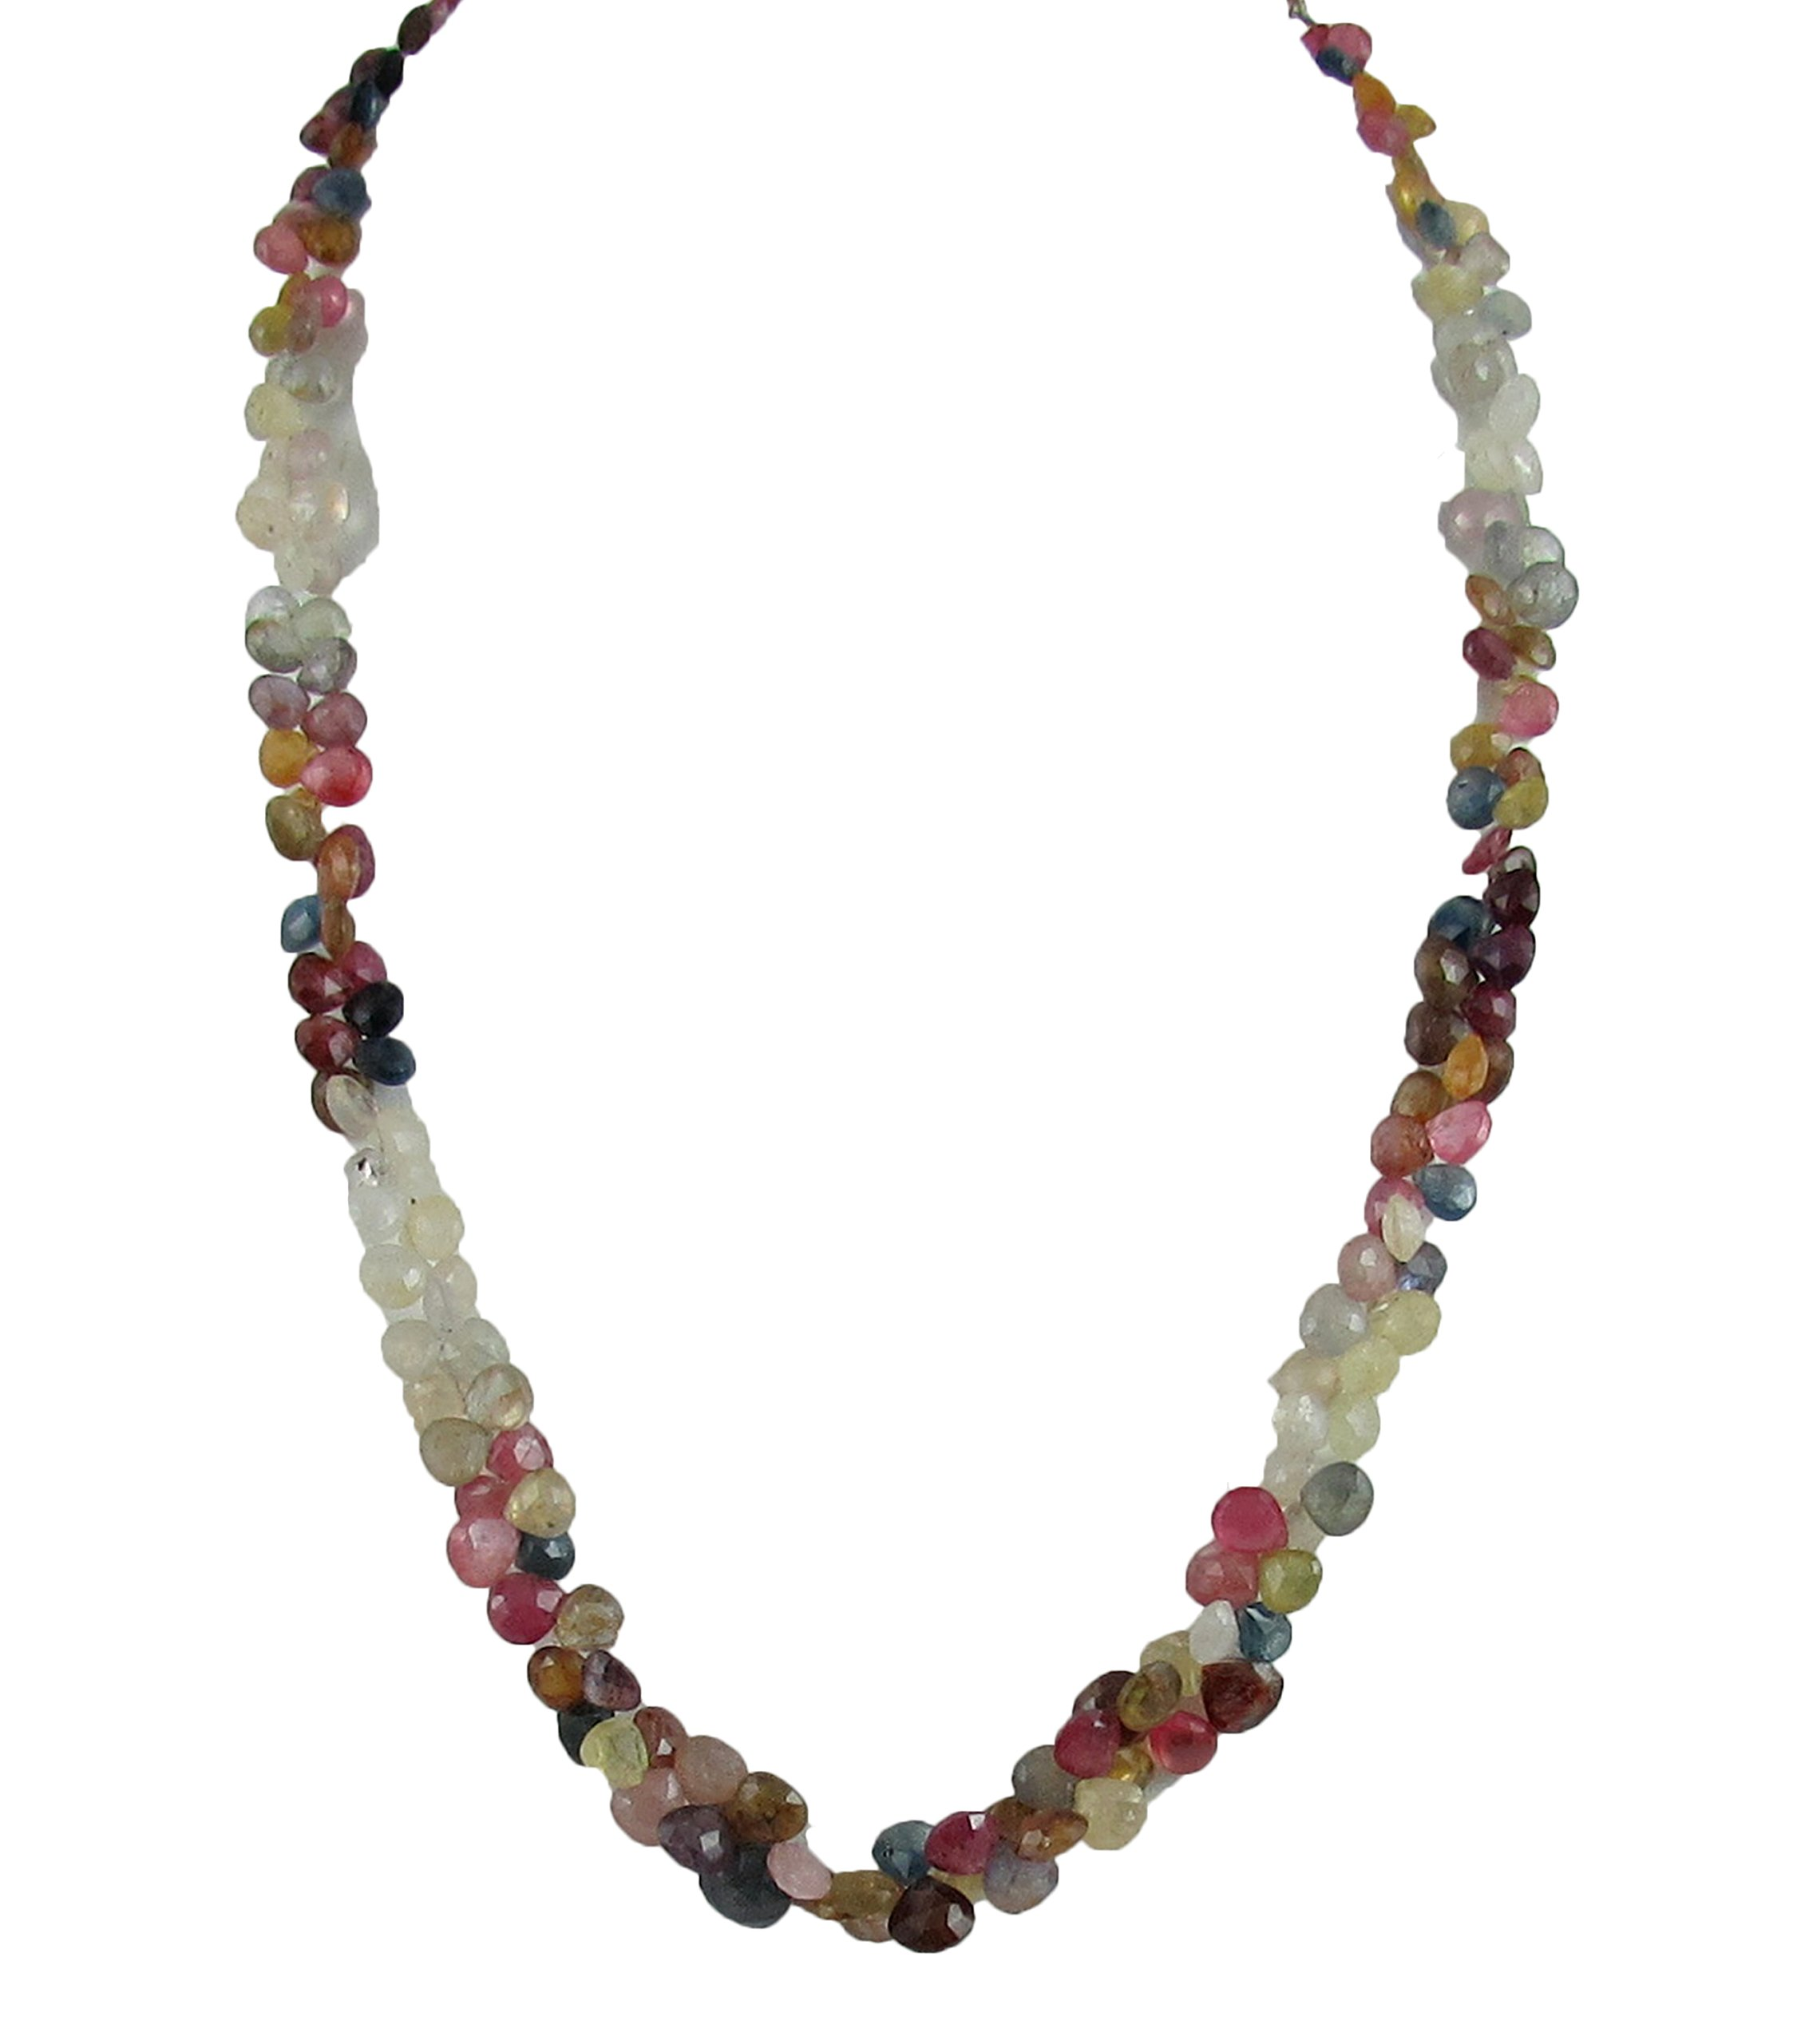 D&D Natural Super Fine Tourmaline drop shape 1 line adjustable necklace with silver hook by D&D (Image #3)